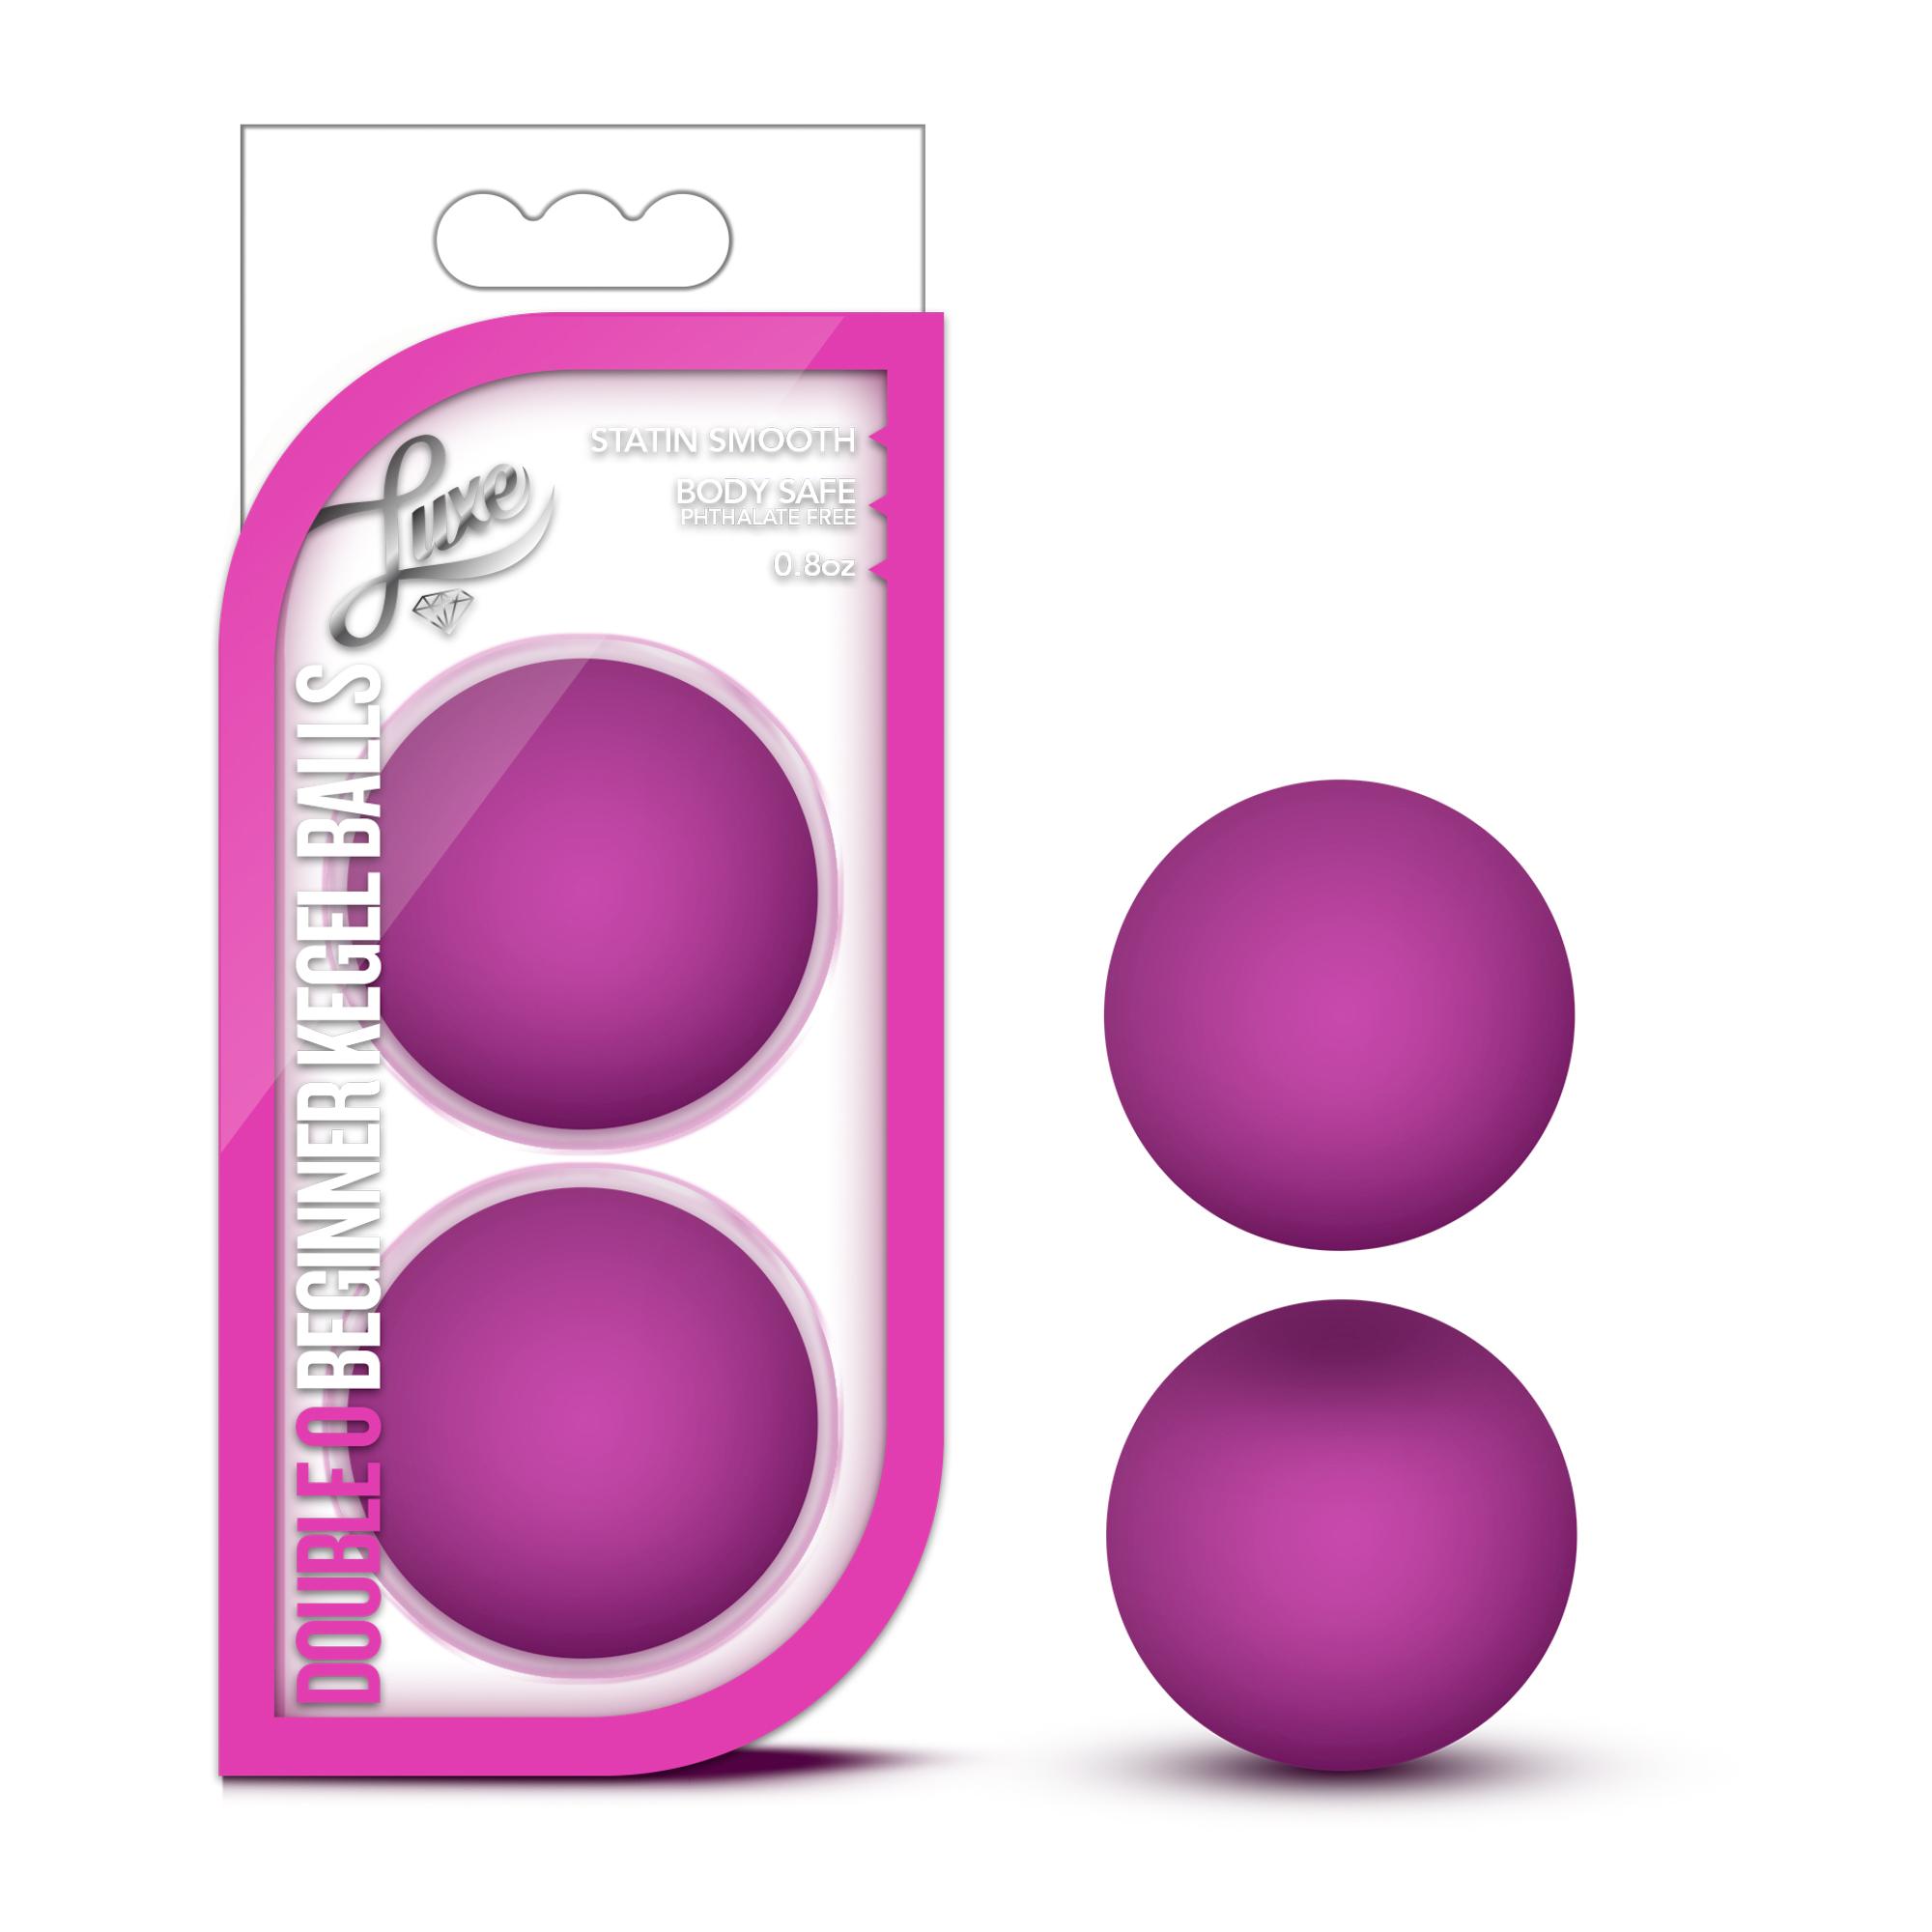 Luxe - Double O Beginner Kegel Balls - Pink